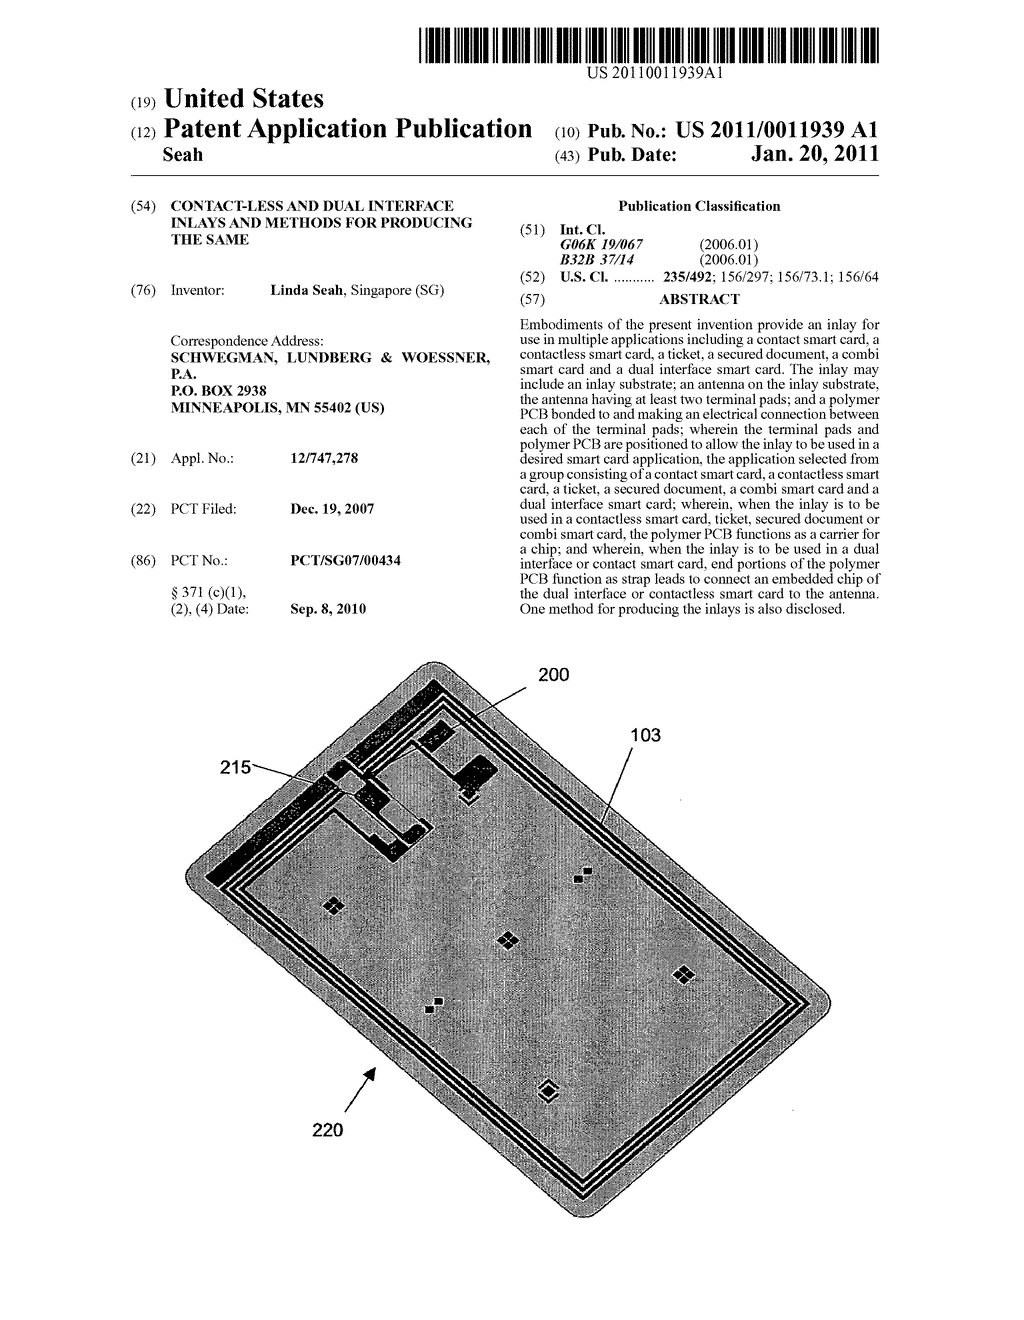 CONTACT-LESS AND DUAL INTERFACE INLAYS AND METHODS FOR PRODUCING THE SAME - diagram, schematic, and image 01